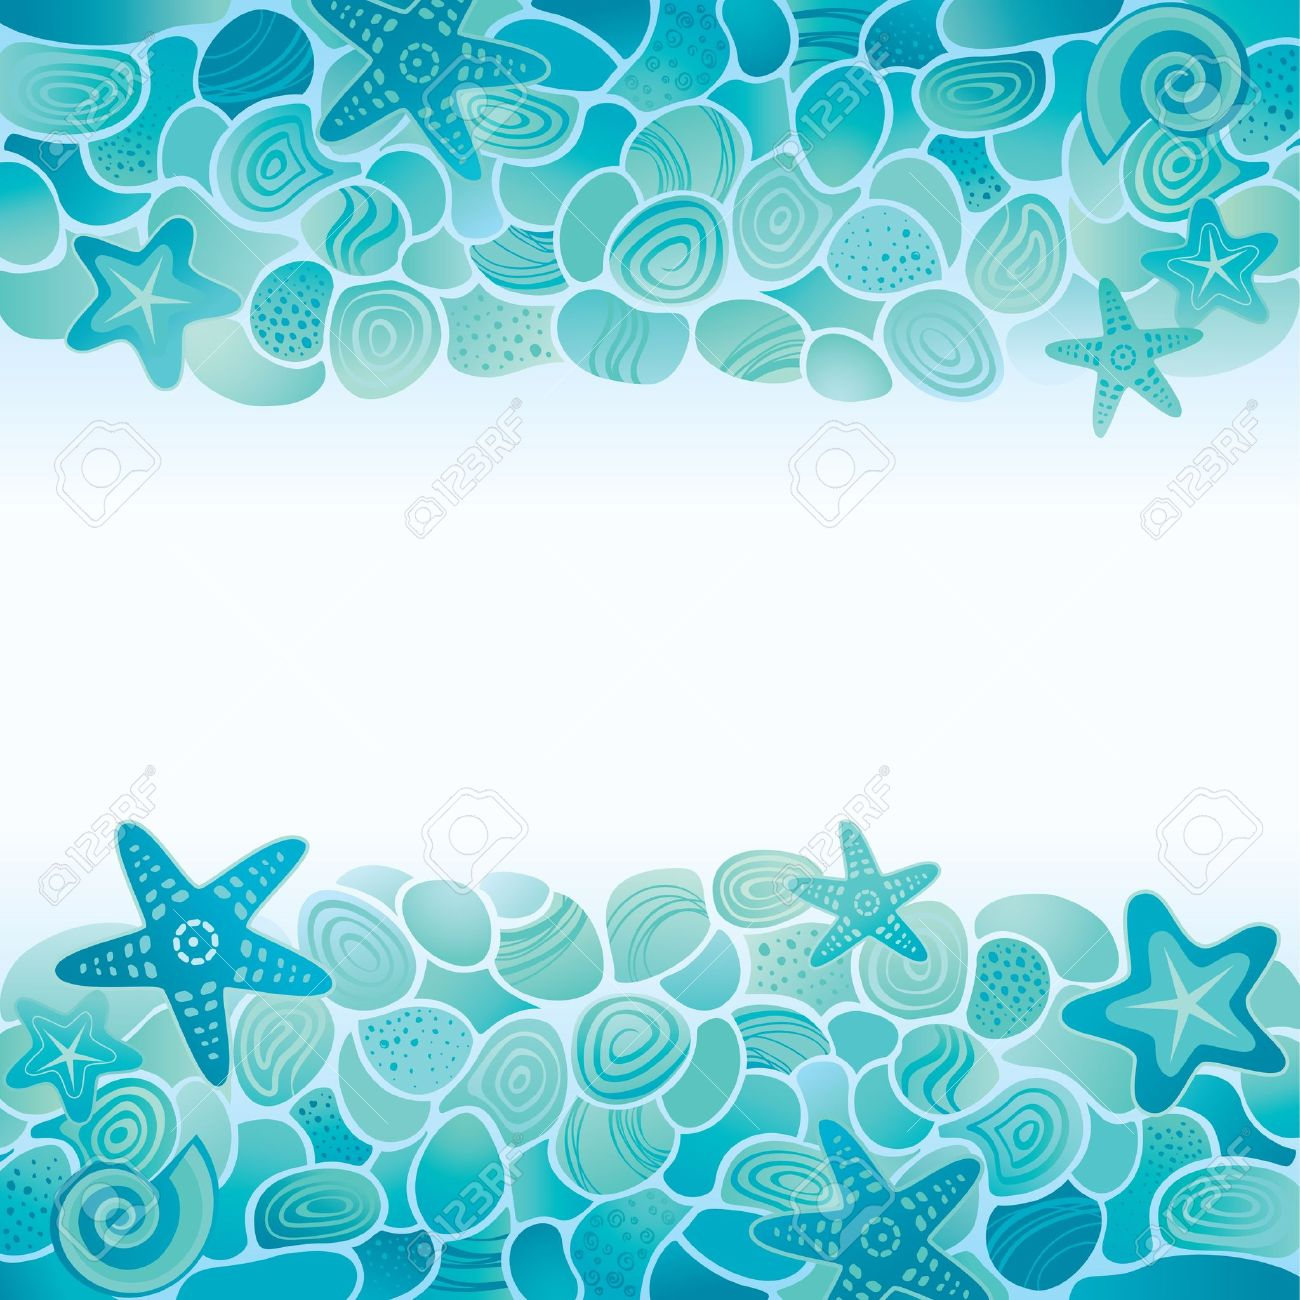 1,299 Seabed Stock Vector Illustration And Royalty Free Seabed Clipart.